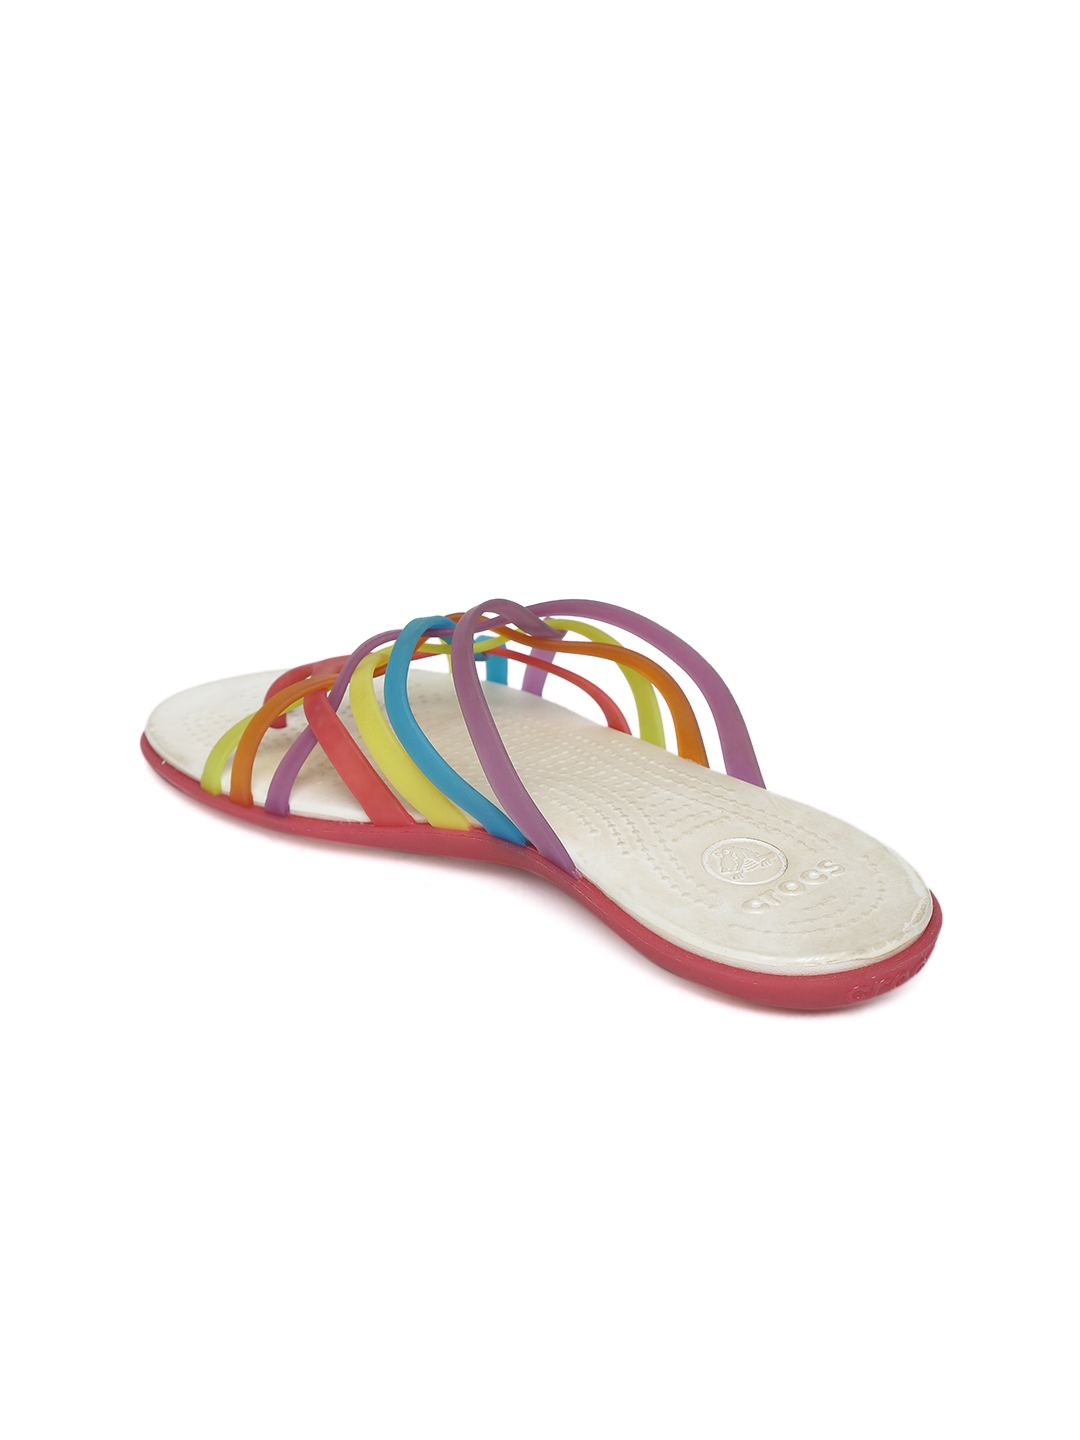 5c58b8170b97 Buy Crocs Women Multicoloured Strappy Huarache Flip Flops - Flip ...